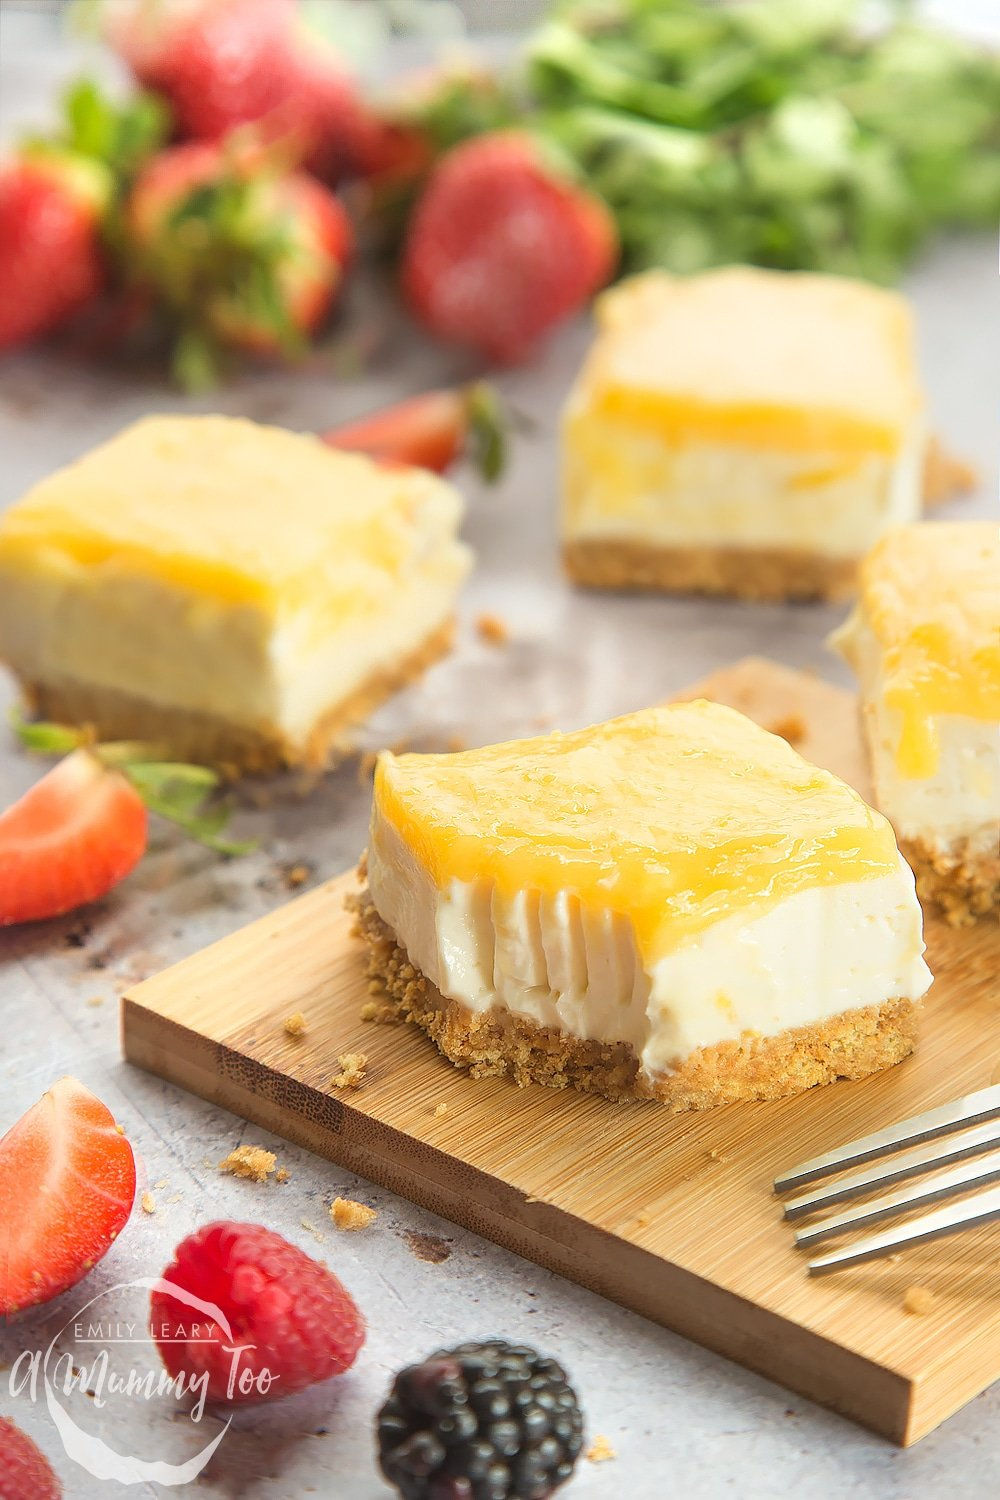 Curd cheesecakes: quick and tasty recipes for cheesecakes in a pan 51